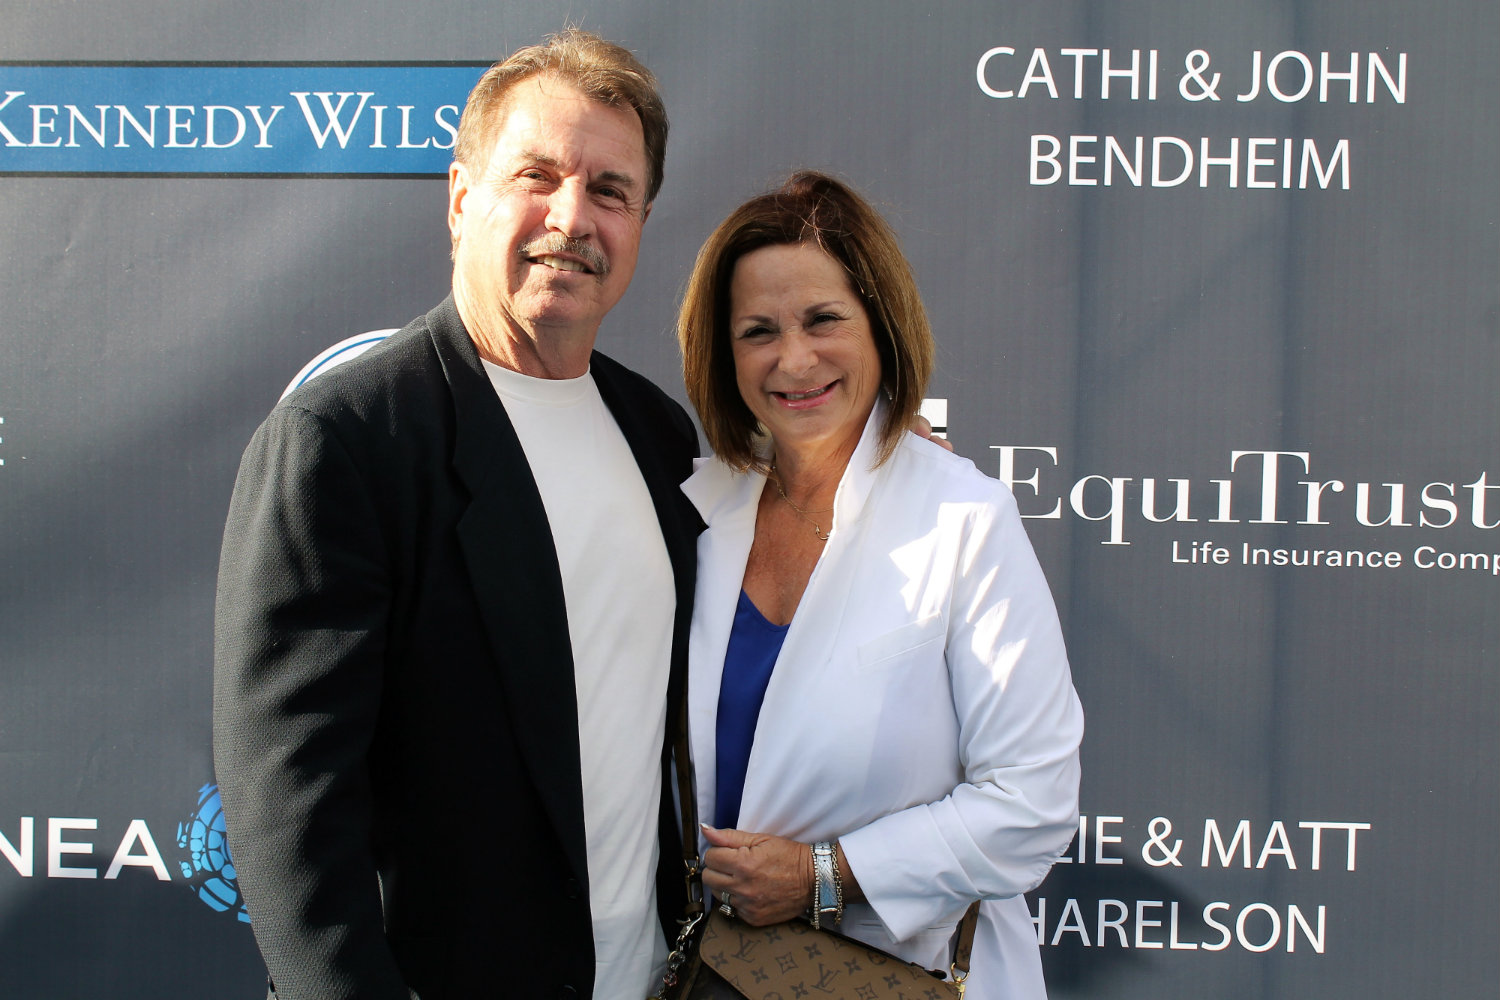 Dodgers legend Ron Cey stops for a pose at the team's 3rd Annual Blue Diamond Gala. Photo by Dennis J. Freeman/News4usonline.com